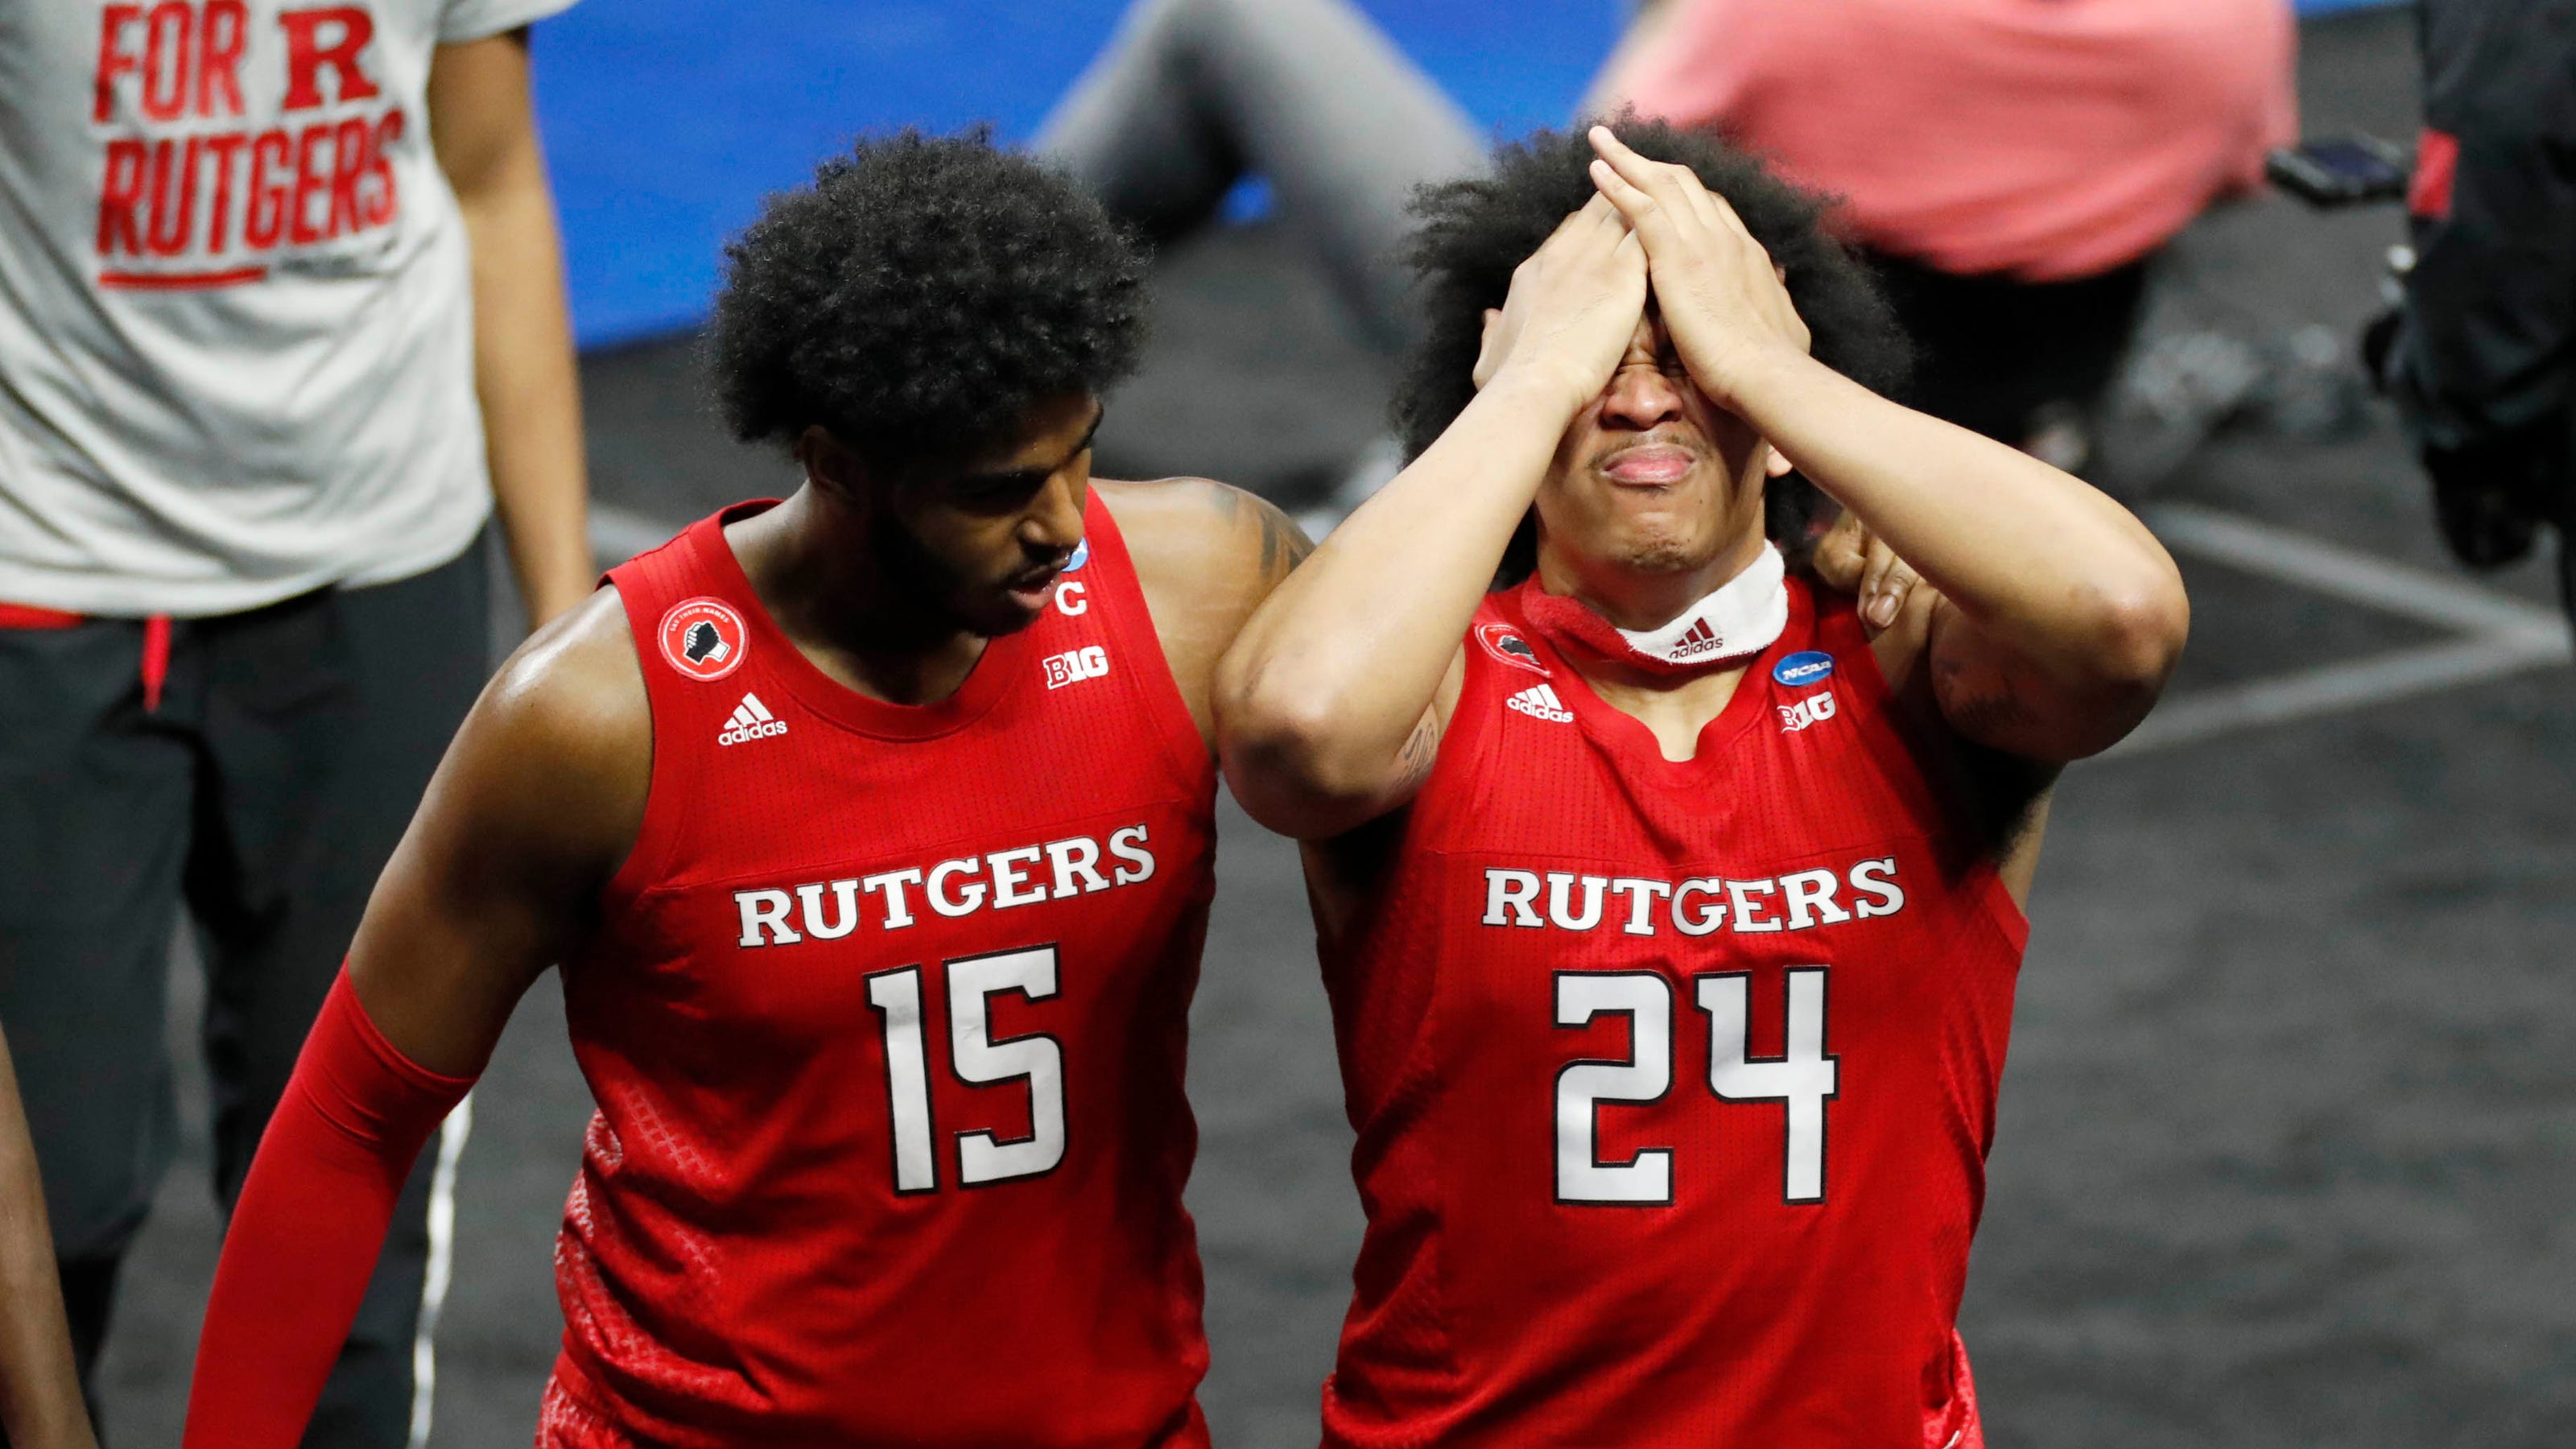 Winners and losers from men's NCAA Tournament second-round games – USA TODAY